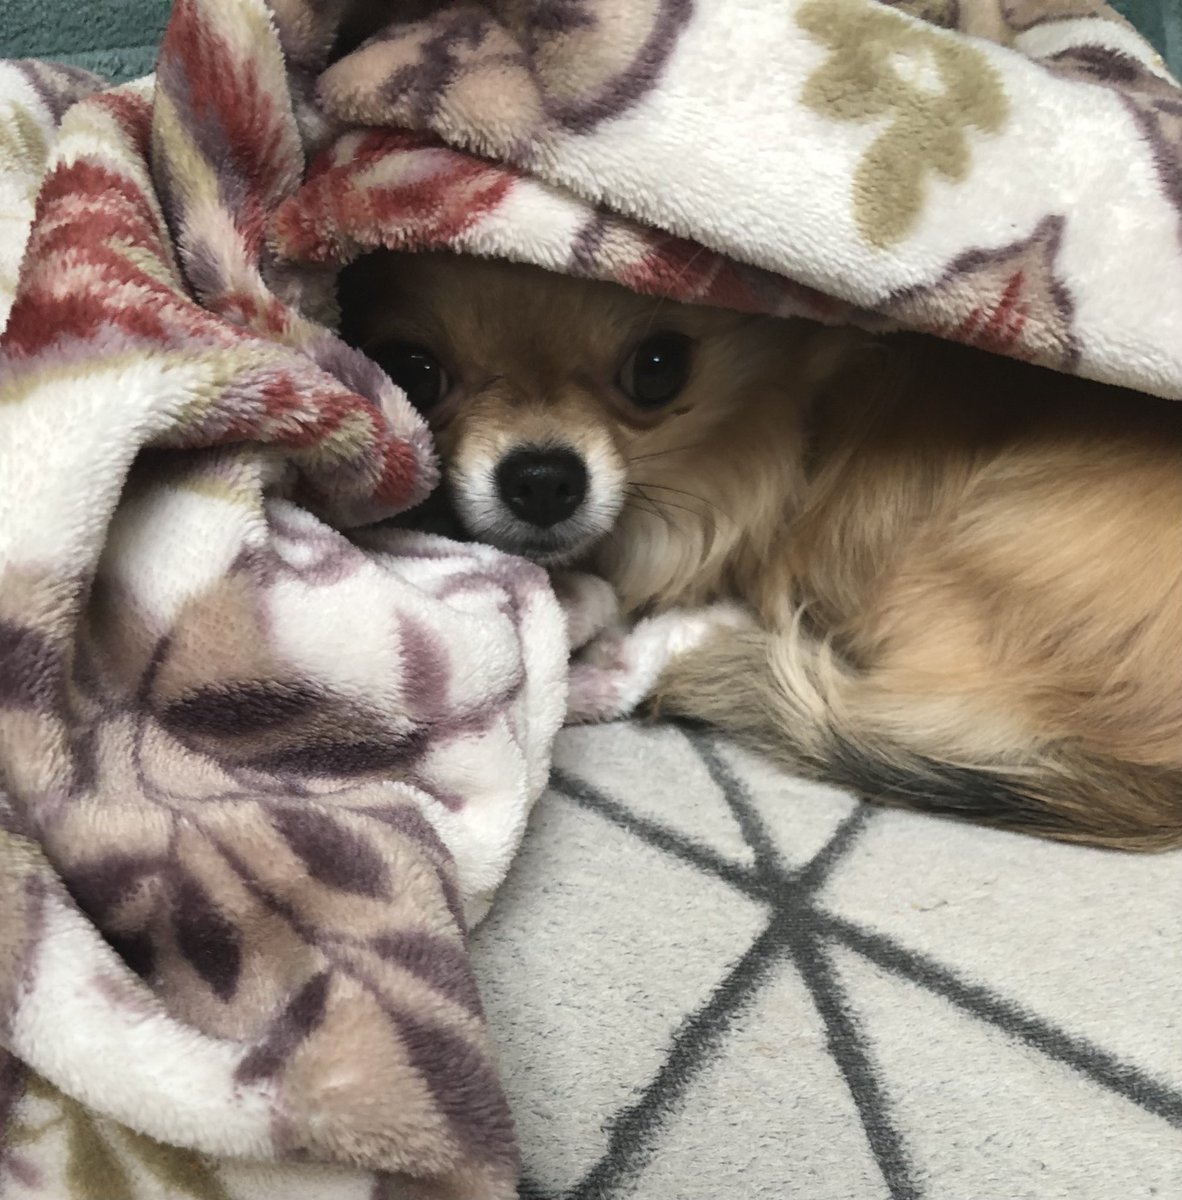 #thursdaymorning It's cold here and I don't want to leave my little den 💨